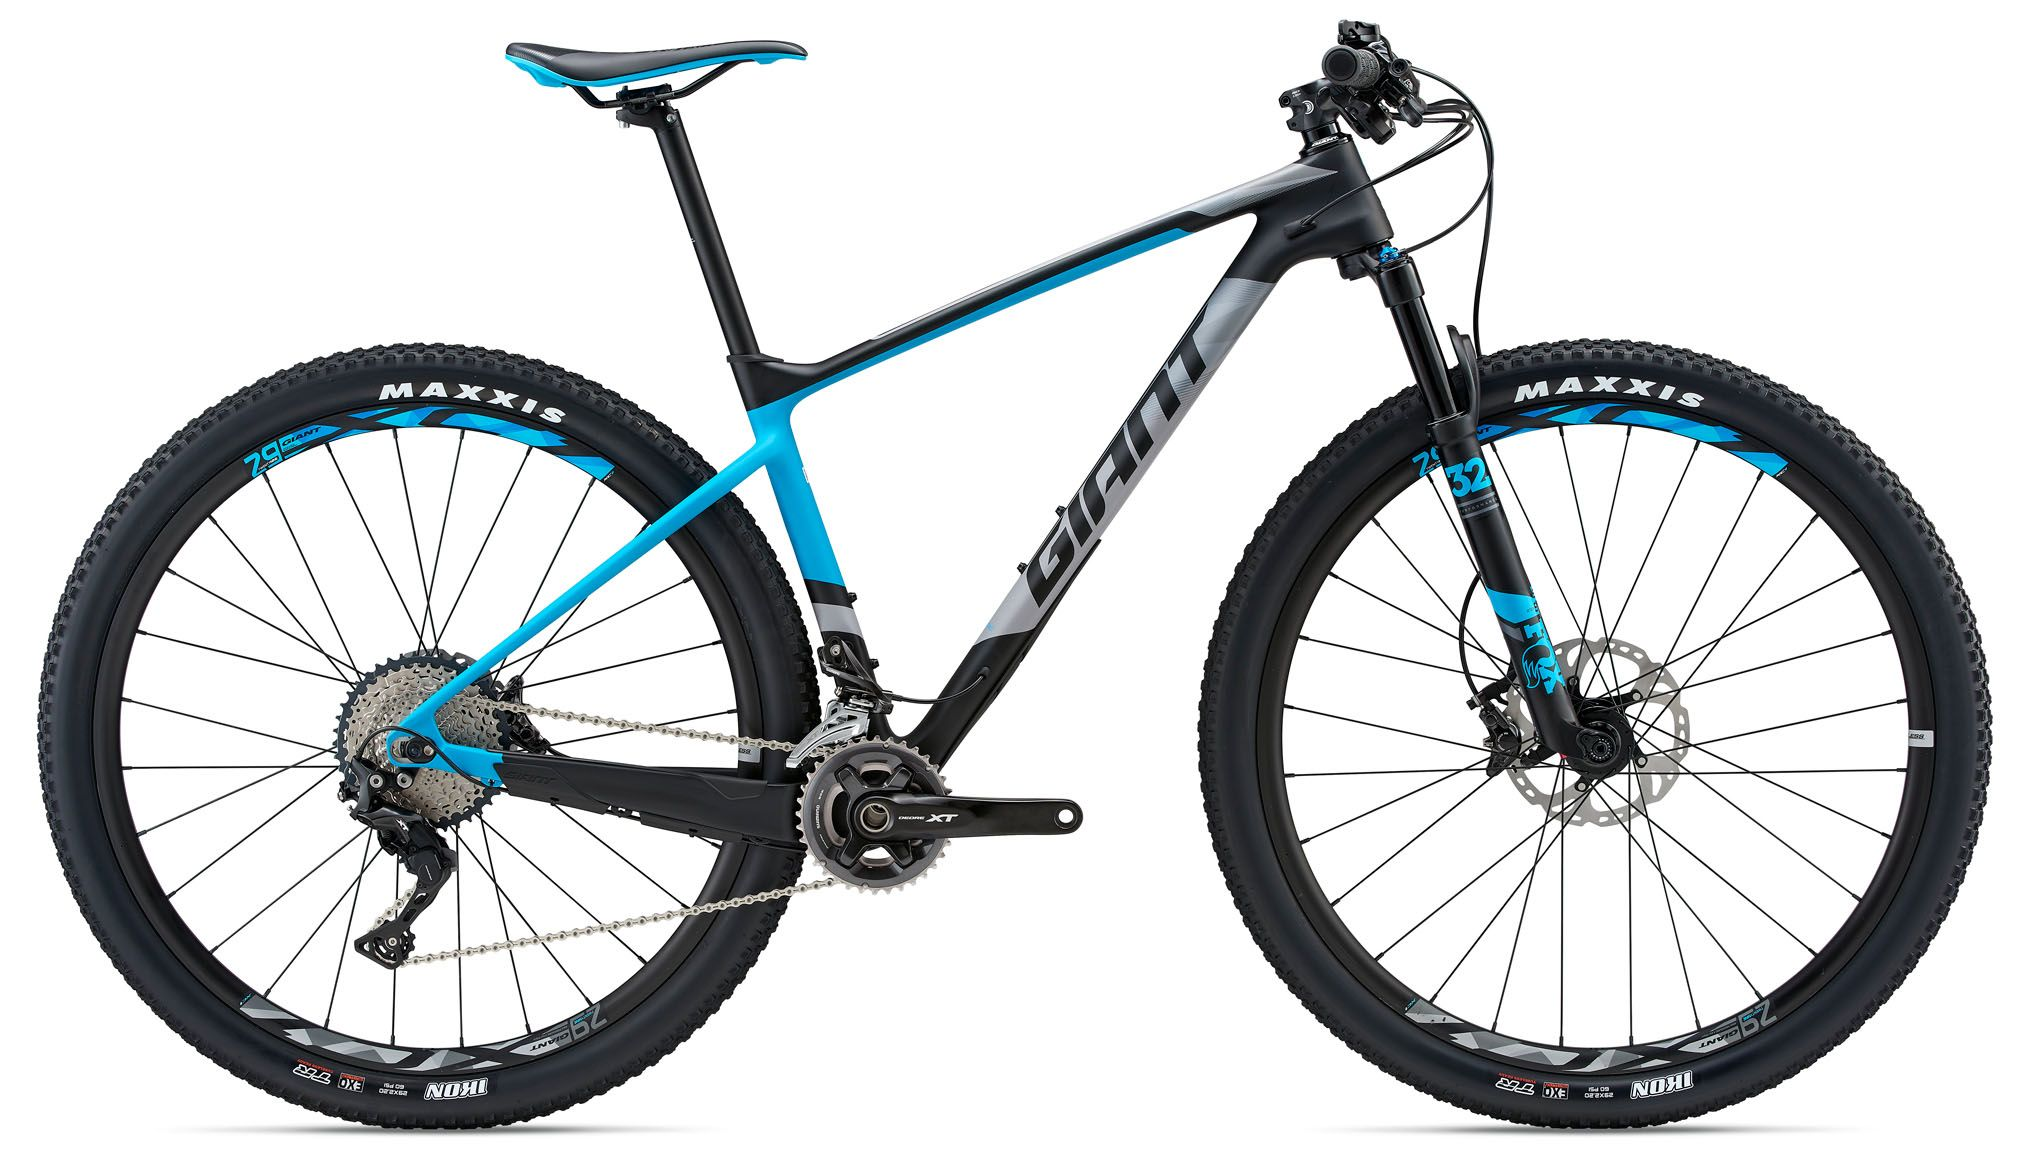 Велосипед Giant XTC Advanced 29er 1.5 GE 2018 велосипед giant talon 29er 2 blk 2014